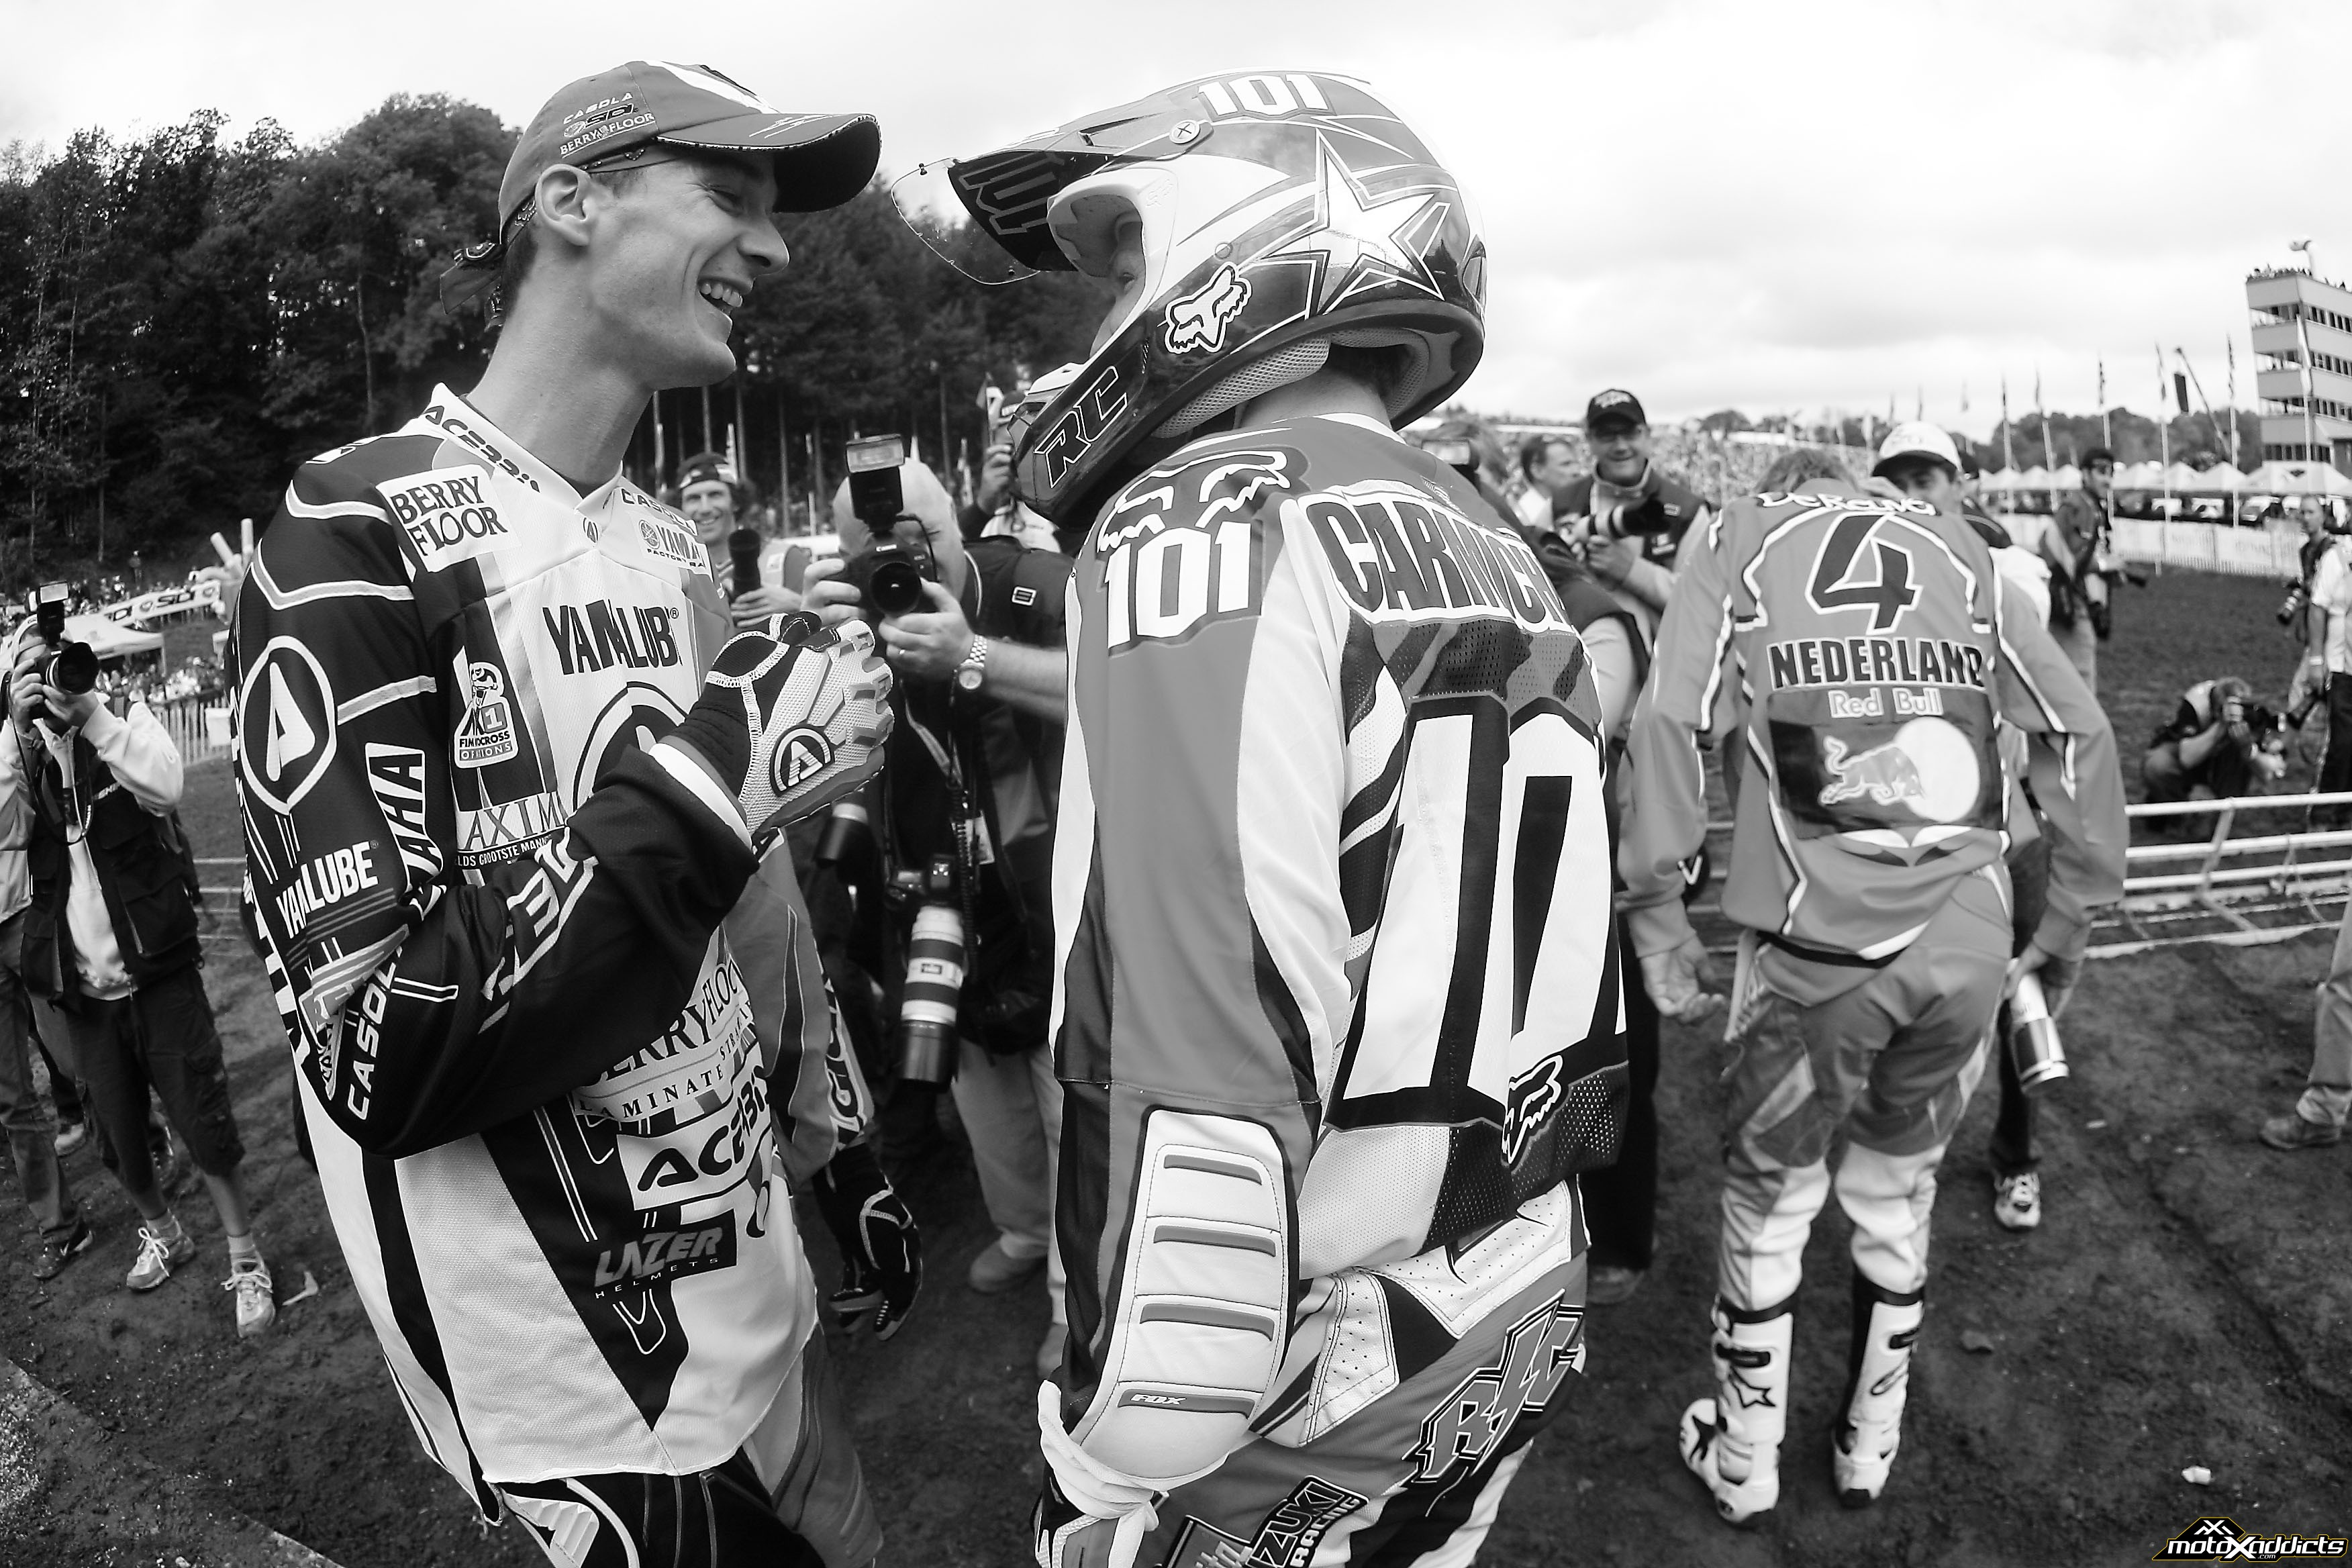 Stefan Everts (left) and Ricky Carmichael (right) are both considered the greatest of all time in their respective series'.